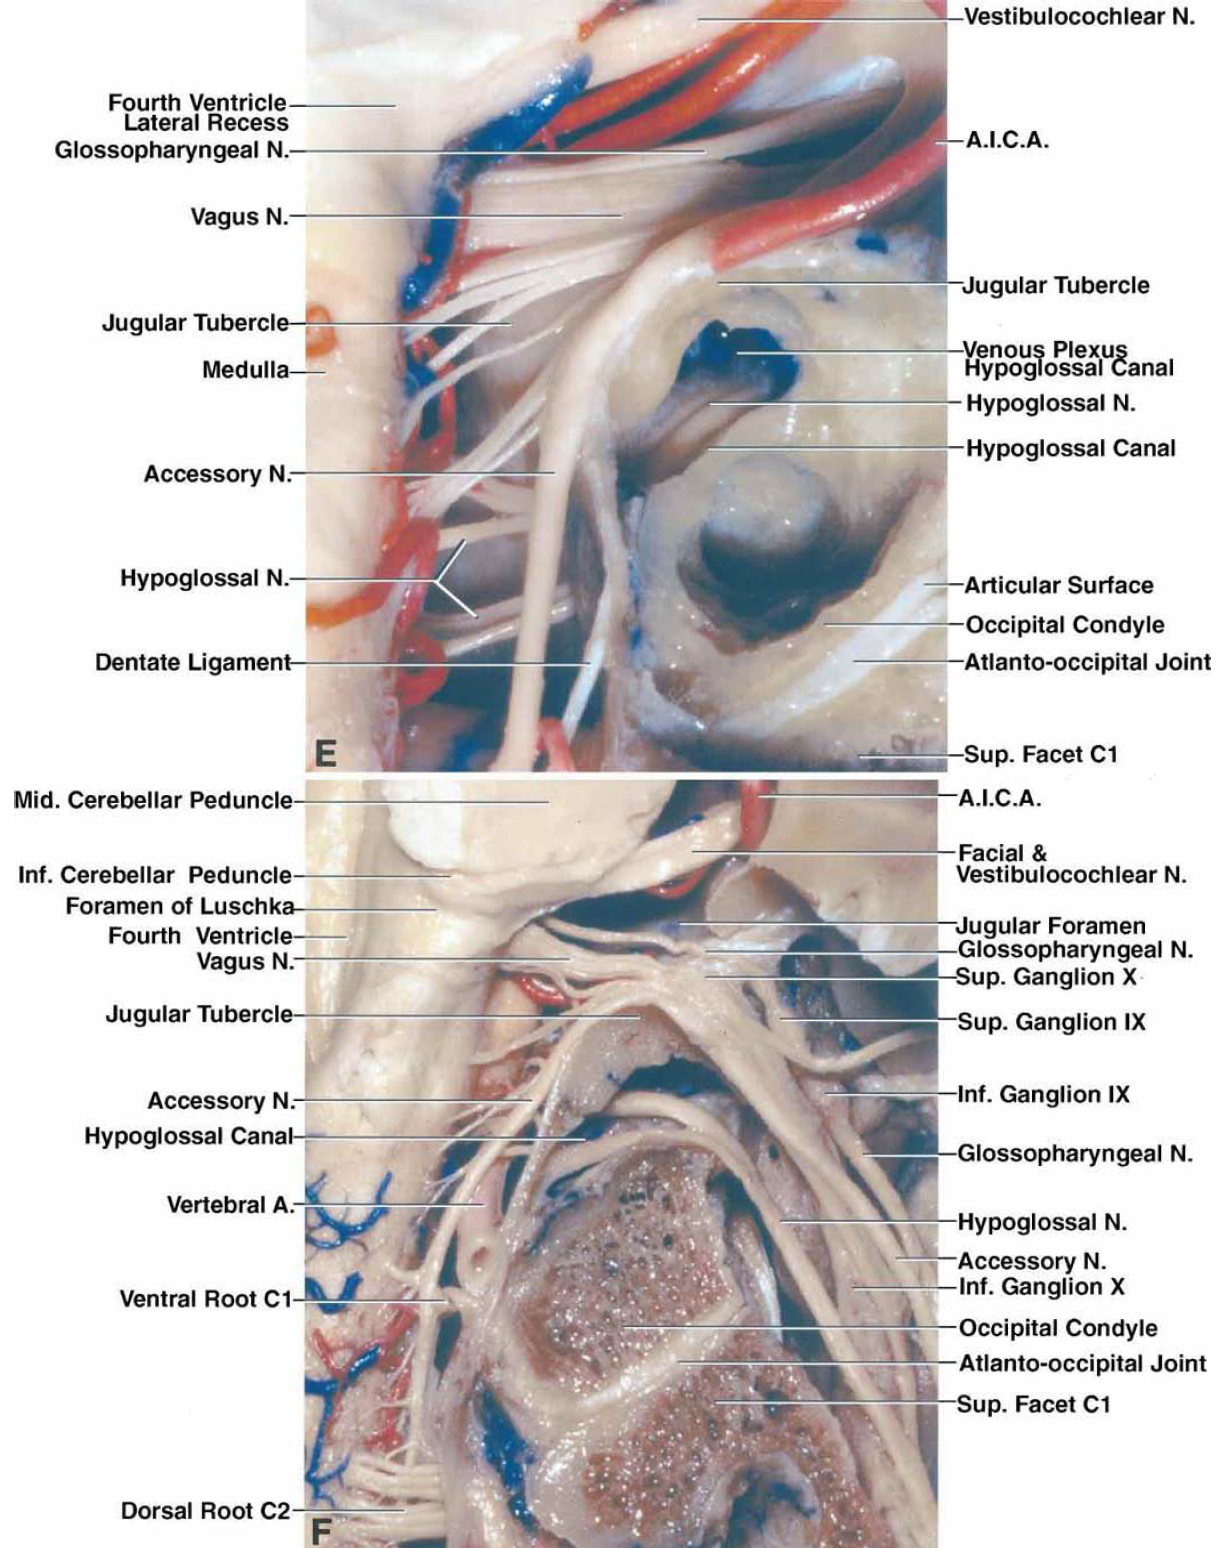 FIG. 4. E–F. E: The hypoglossal canal has been opened to expose the hypoglossal nerve and the venous plexus of the hypoglossal canal. The apex or highest point of the jugular tubercle is located in front of the vagus nerve. F: The jugular process of the occipital bone, which forms the posterior margin of the jugular foramen, the sigmoid sinus, and the jugular bulb have been removed to provide this exposure of the glossopharyngeal, vagus, and accessory nerves as they pass through the jugular foramen and the hypoglossal nerve as it passes through the hypoglossal canal. The posterior portion of the bone adjoining the atlantooccipital joint has been removed to expose the articular surfaces. Bone has been drilled in a supracondylar location above the hypoglossal canal to remove a portion of the jugular tubercle around which the vagus and accessory nerves curve to reach the jugular foramen.